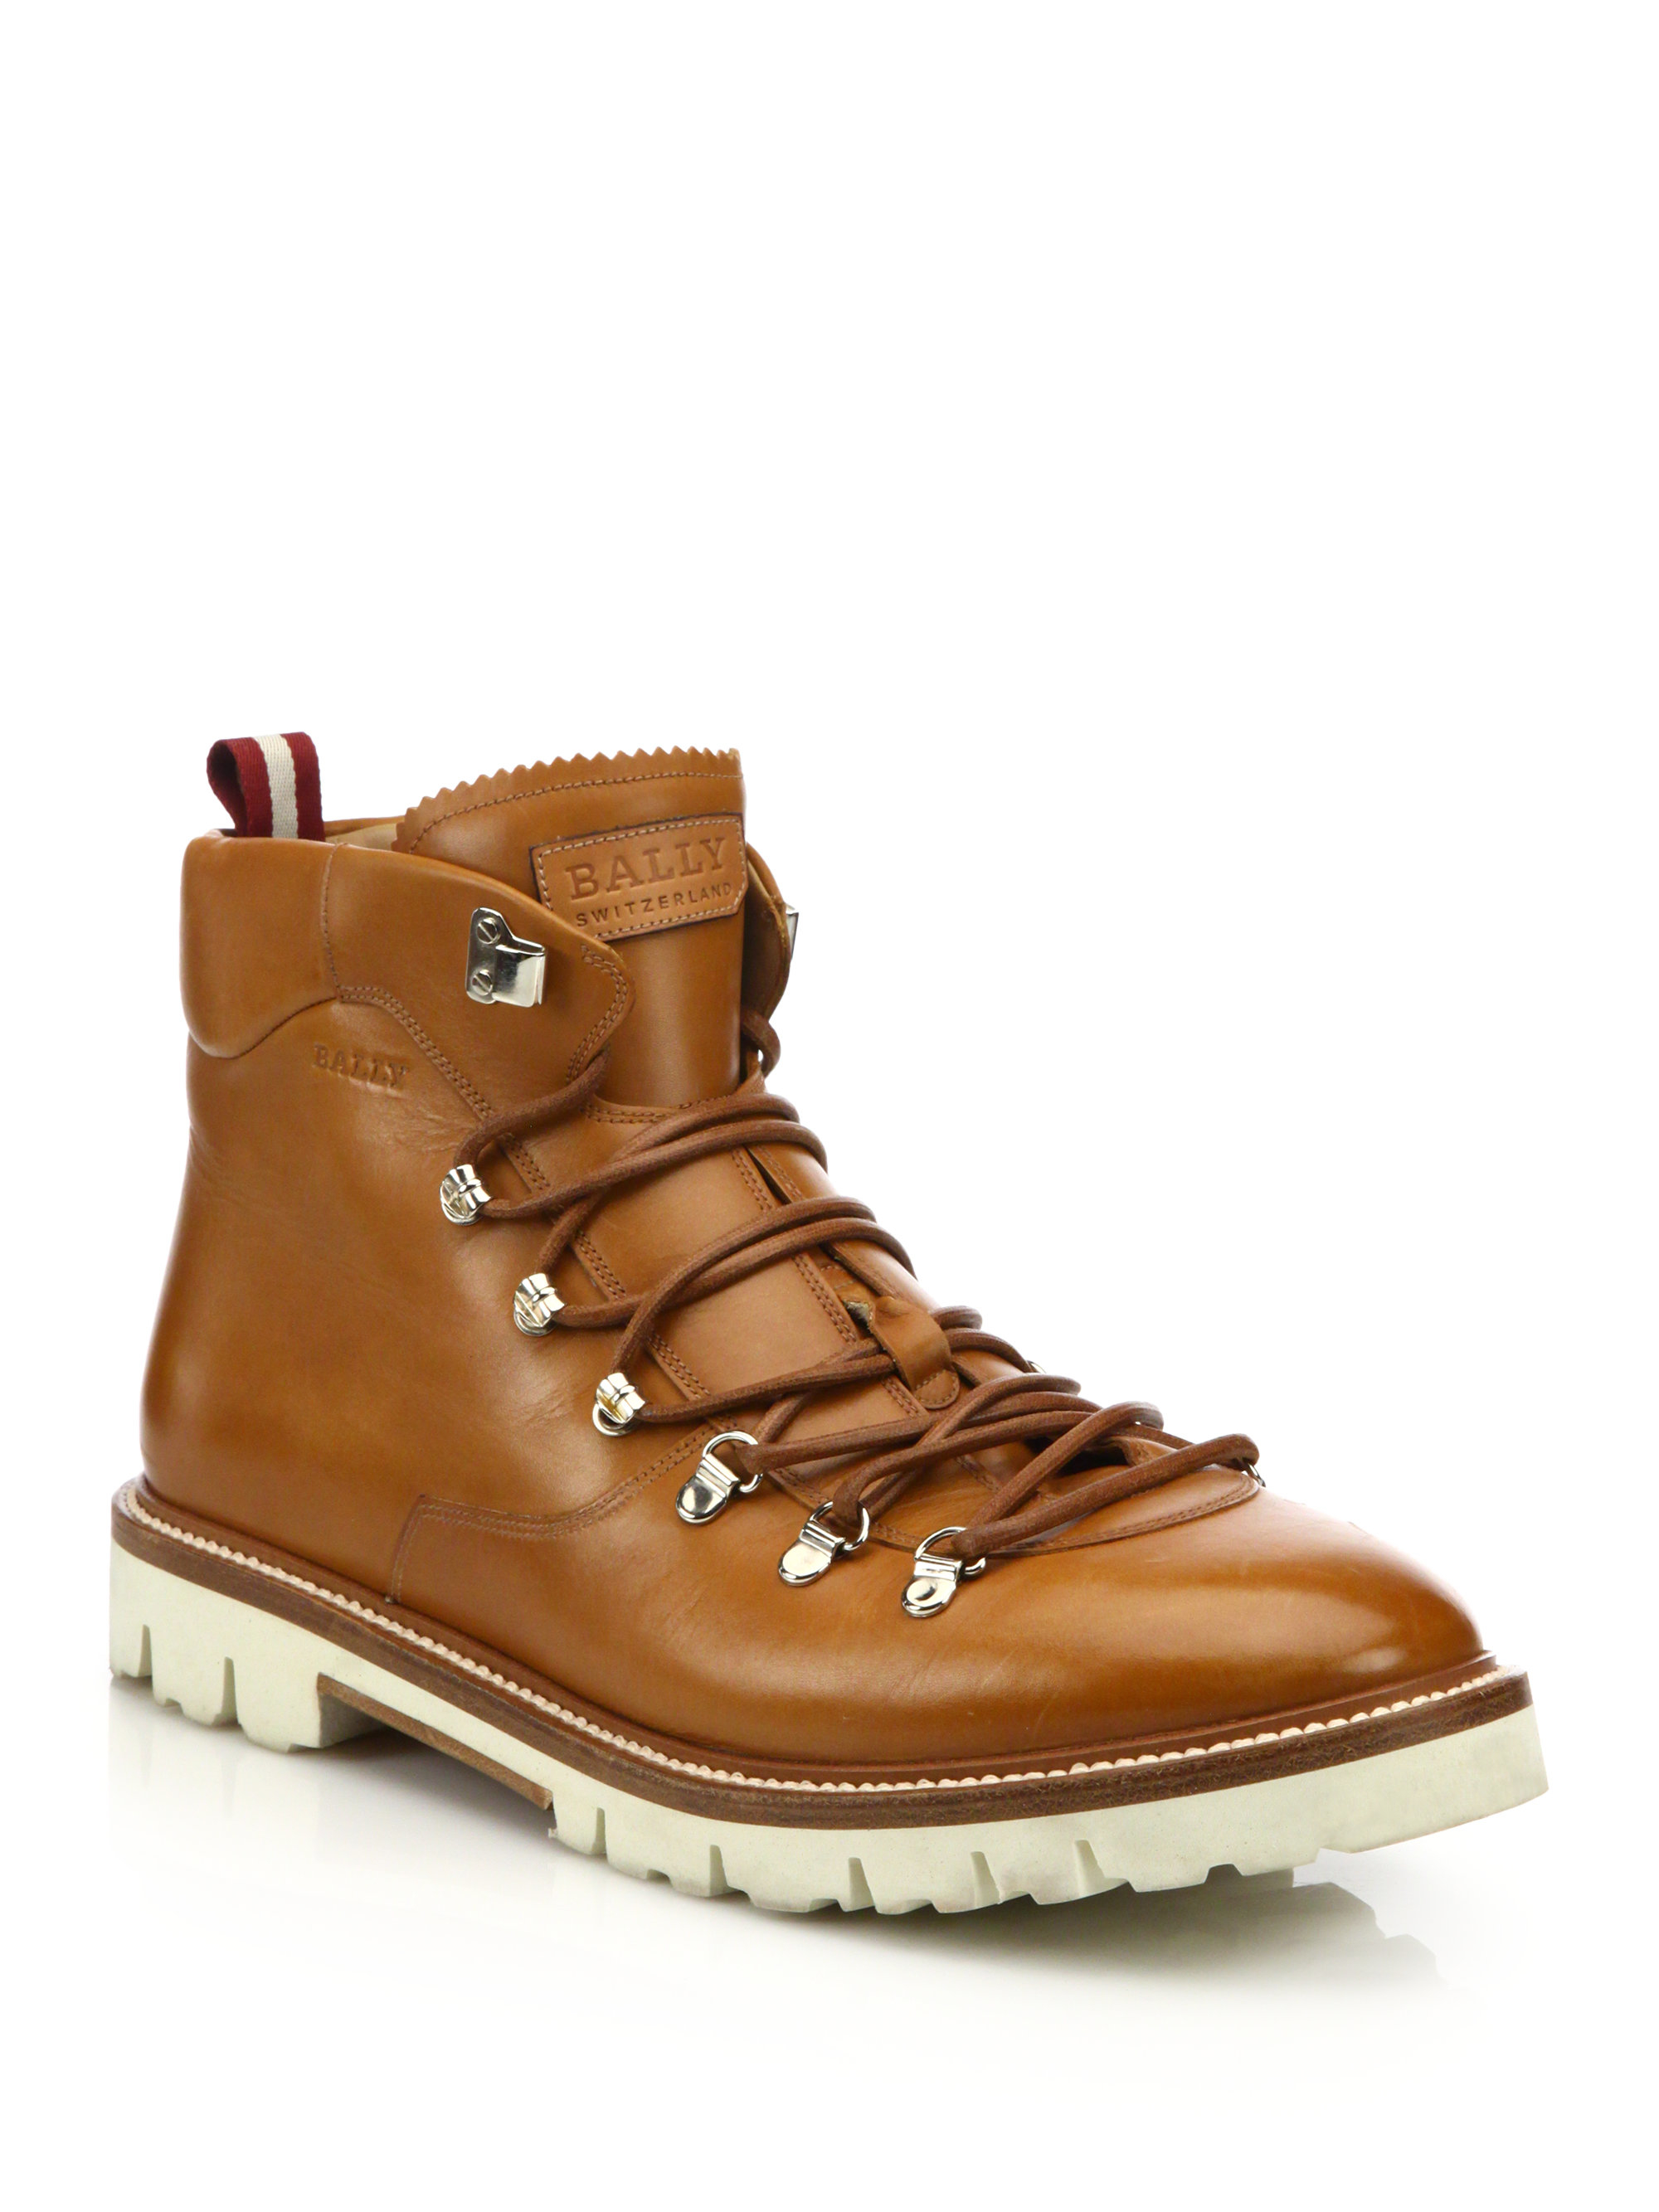 Bally J Cole For Leather Hiking Boots In Brown For Men